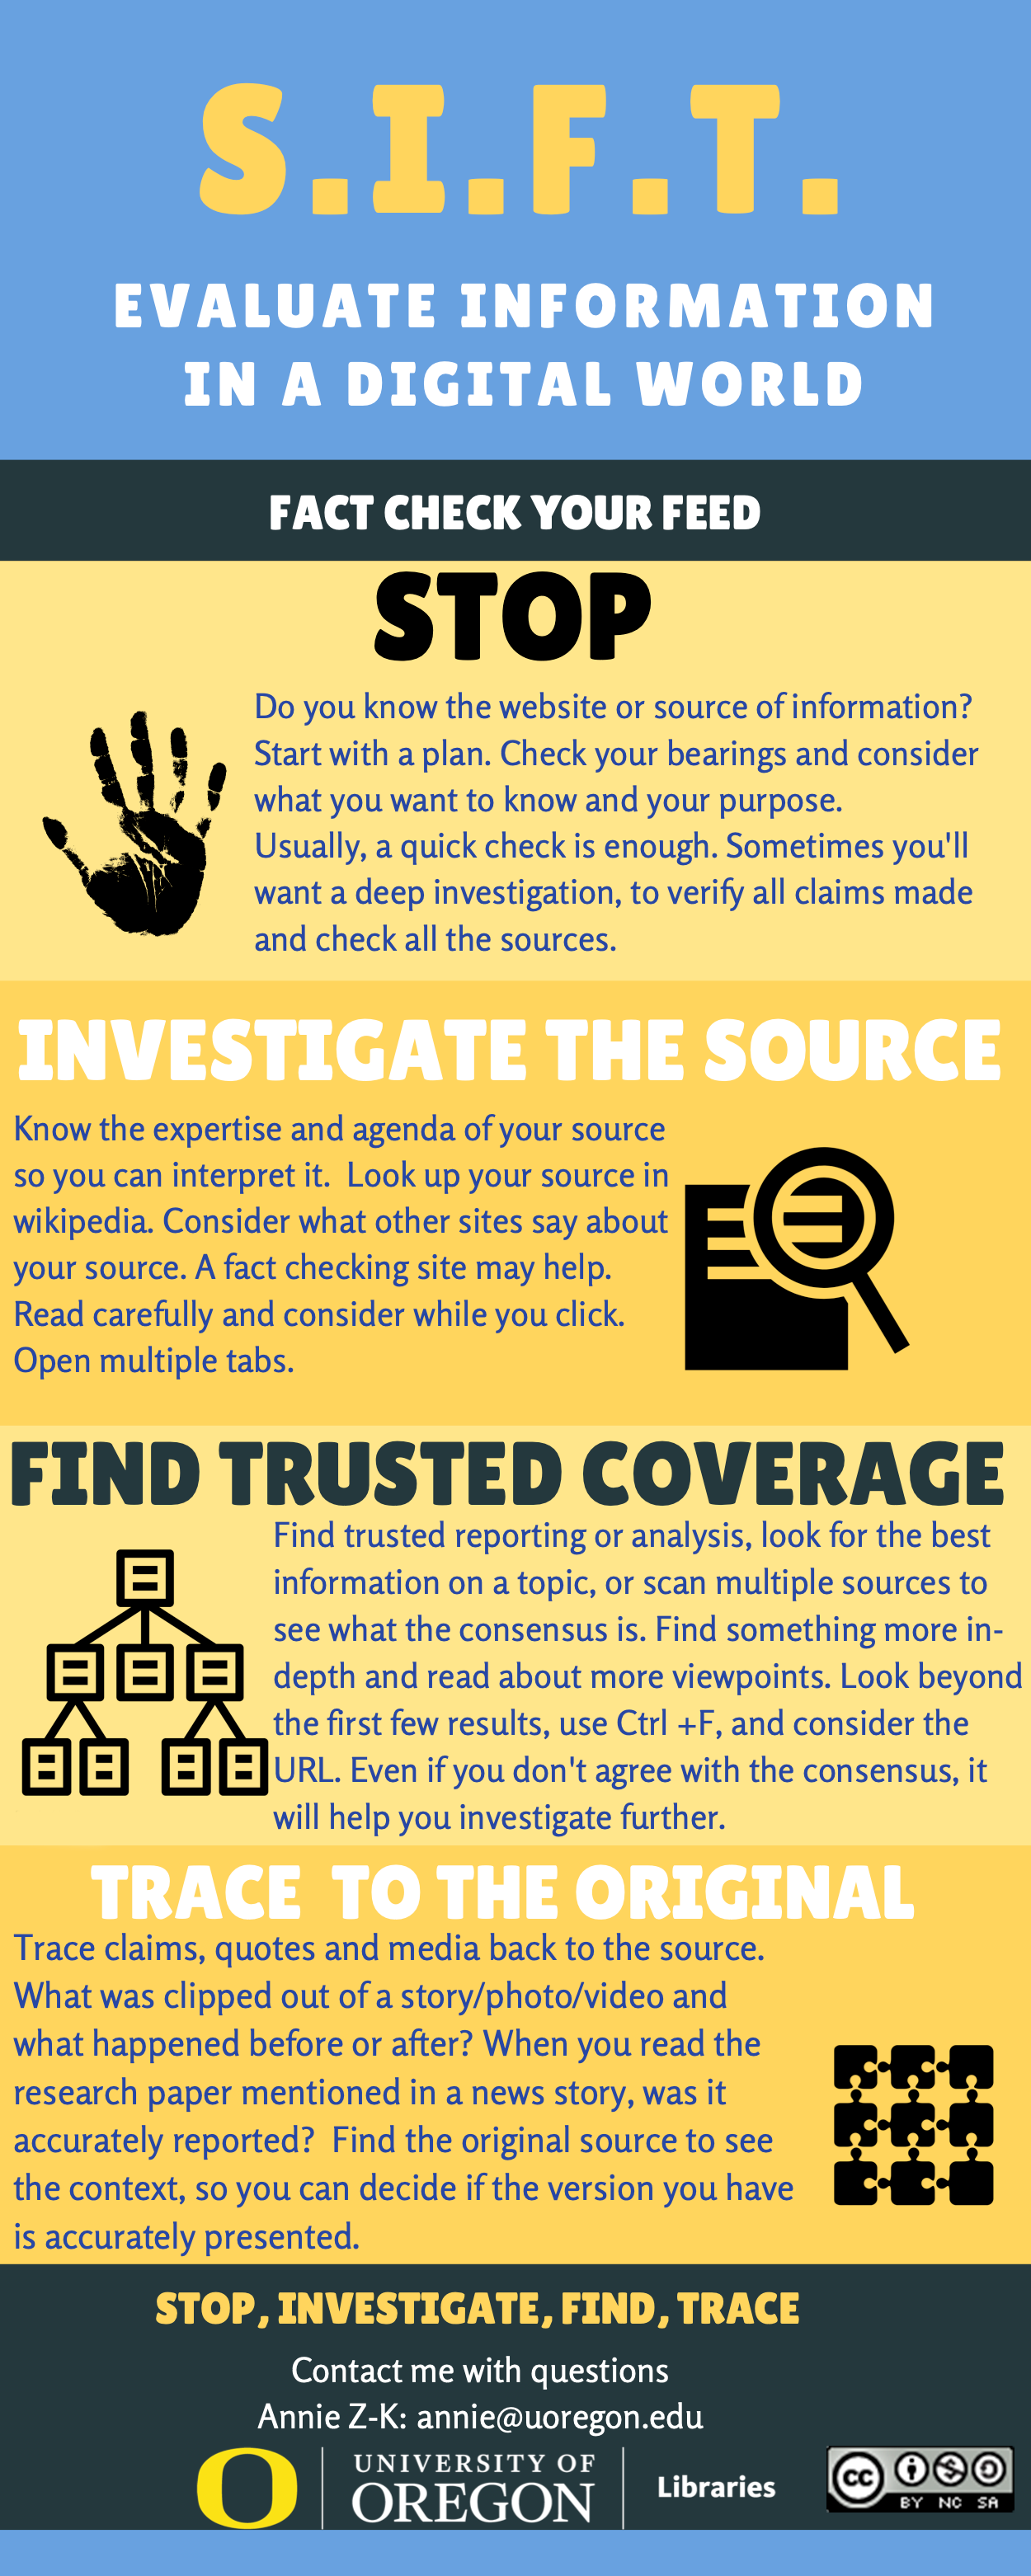 S.I.F.T: Evaluate Information in a Digital World Fact Check your Feed      Stop         Do you know the website or source of information? Start with a plan. Check your bearings and consider what you want to know and your purpose. Usually, a quick check is enough. Sometimes you'll want a deep investigation to verify all claims made and check all the sources.     Investigate the Source         Know the expertise and agenda of your source so you can interpret it. Look up your source in Wikipedia. Consider what other sites say about your source. A fact checking site may help. Read carefully and consider while you click. Open multiple tabs.     Find trusted coverage         Find trusted reporting or analysis, look for the best information on a topic, or scan multiple sources to see what consensus is. Find something more in-depth and read about more viewpoints. Look beyond the first few results, use Ctrl + F, and consider the URL. Even if you don't agree with the consensus, it will help you investigate further.     Trace claims, quotes, and media back to the original context         Trace claims, quotes and media back to the source. What was clipped out of a story/photo/video and what happened before or after? When you read the research paper mentioned in a news story, was it accurately reported? Find the original source to see the context, so you can decide if the version you have is accurately presented.  STOP, INVESTIGATE, FIND, TRACE.  From the University of Oregon.